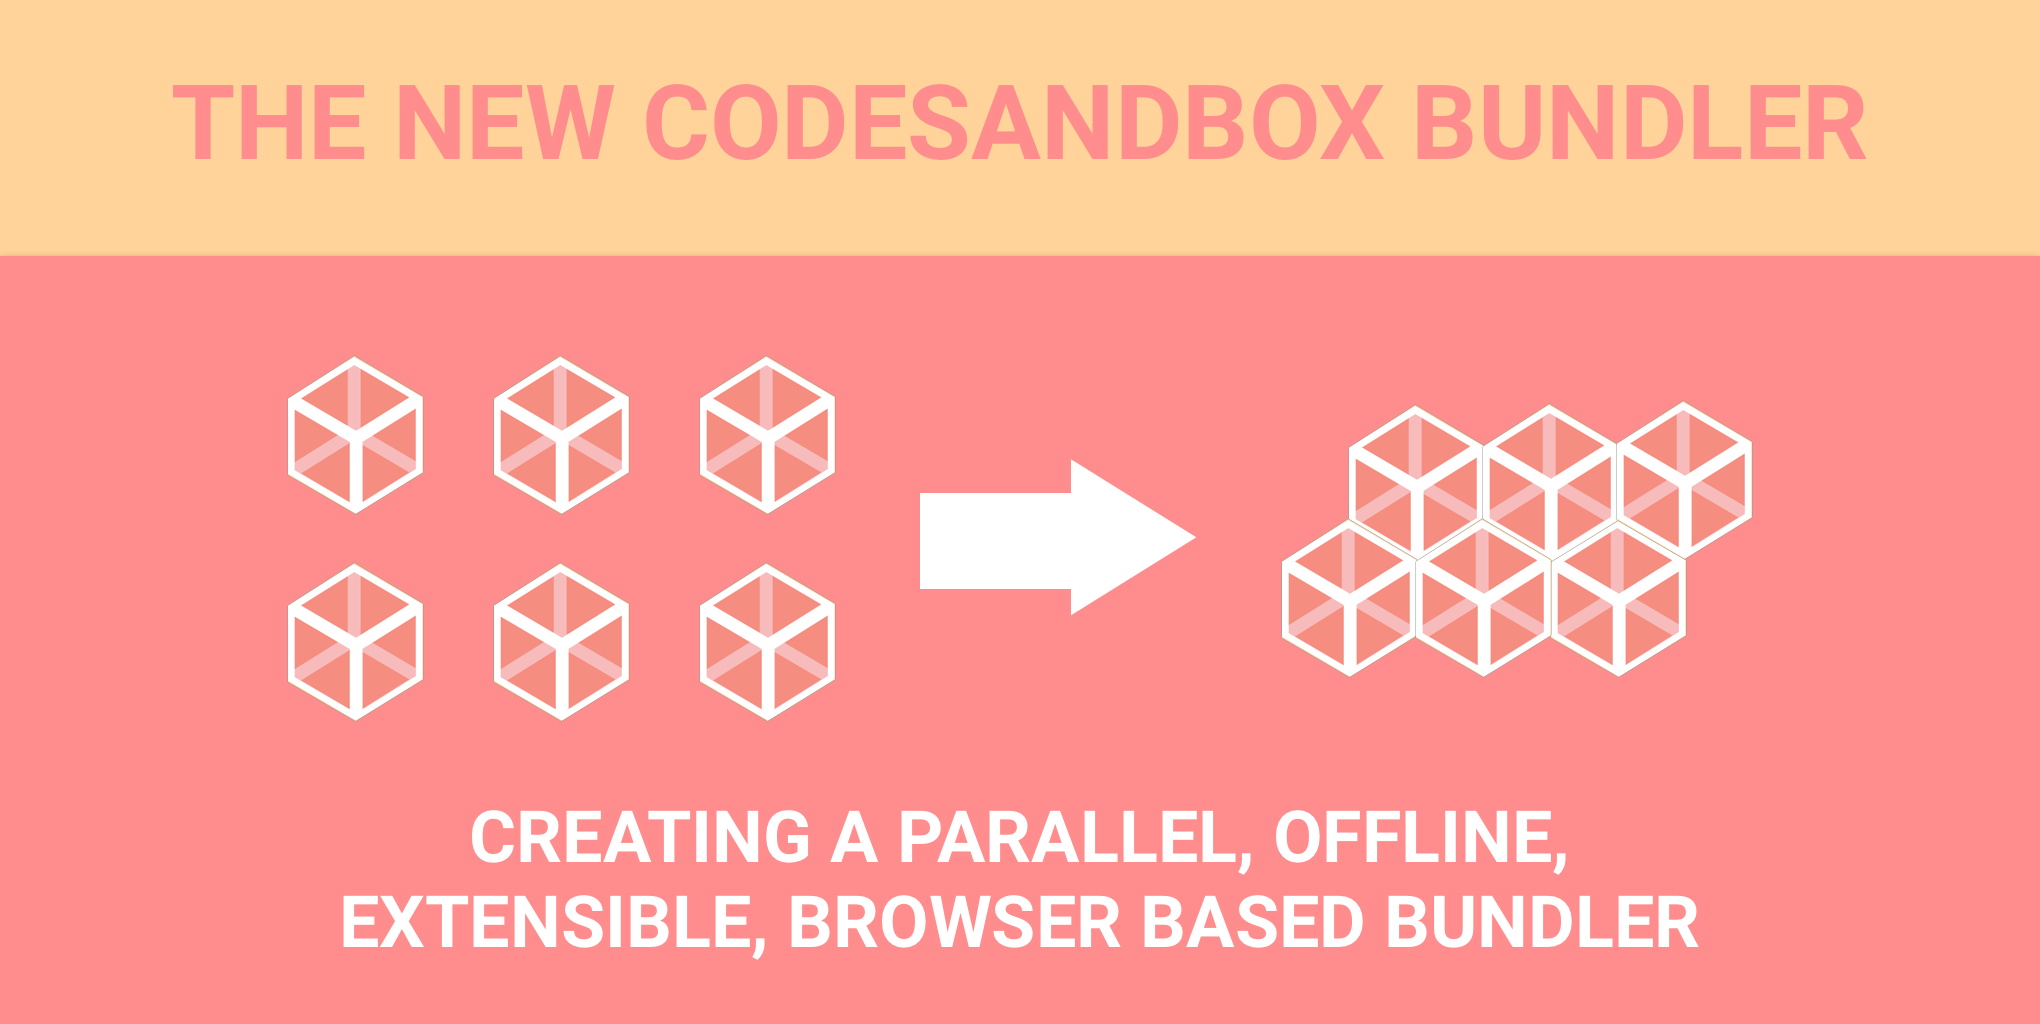 /how-i-created-a-parallel-offline-extensible-browser-based-bundler-886db508cc31 feature image